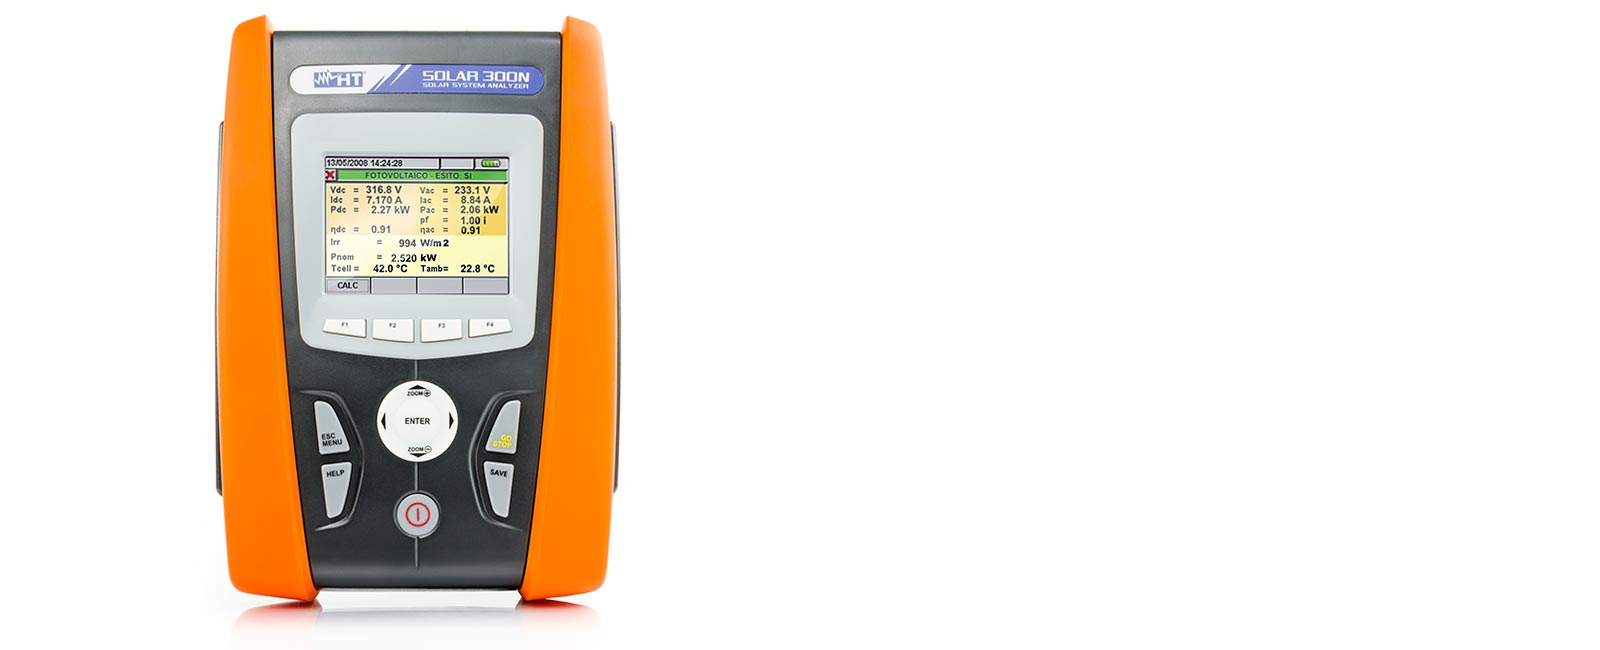 Power Quality Analyzer for checking the efficiency of photovoltaic systems